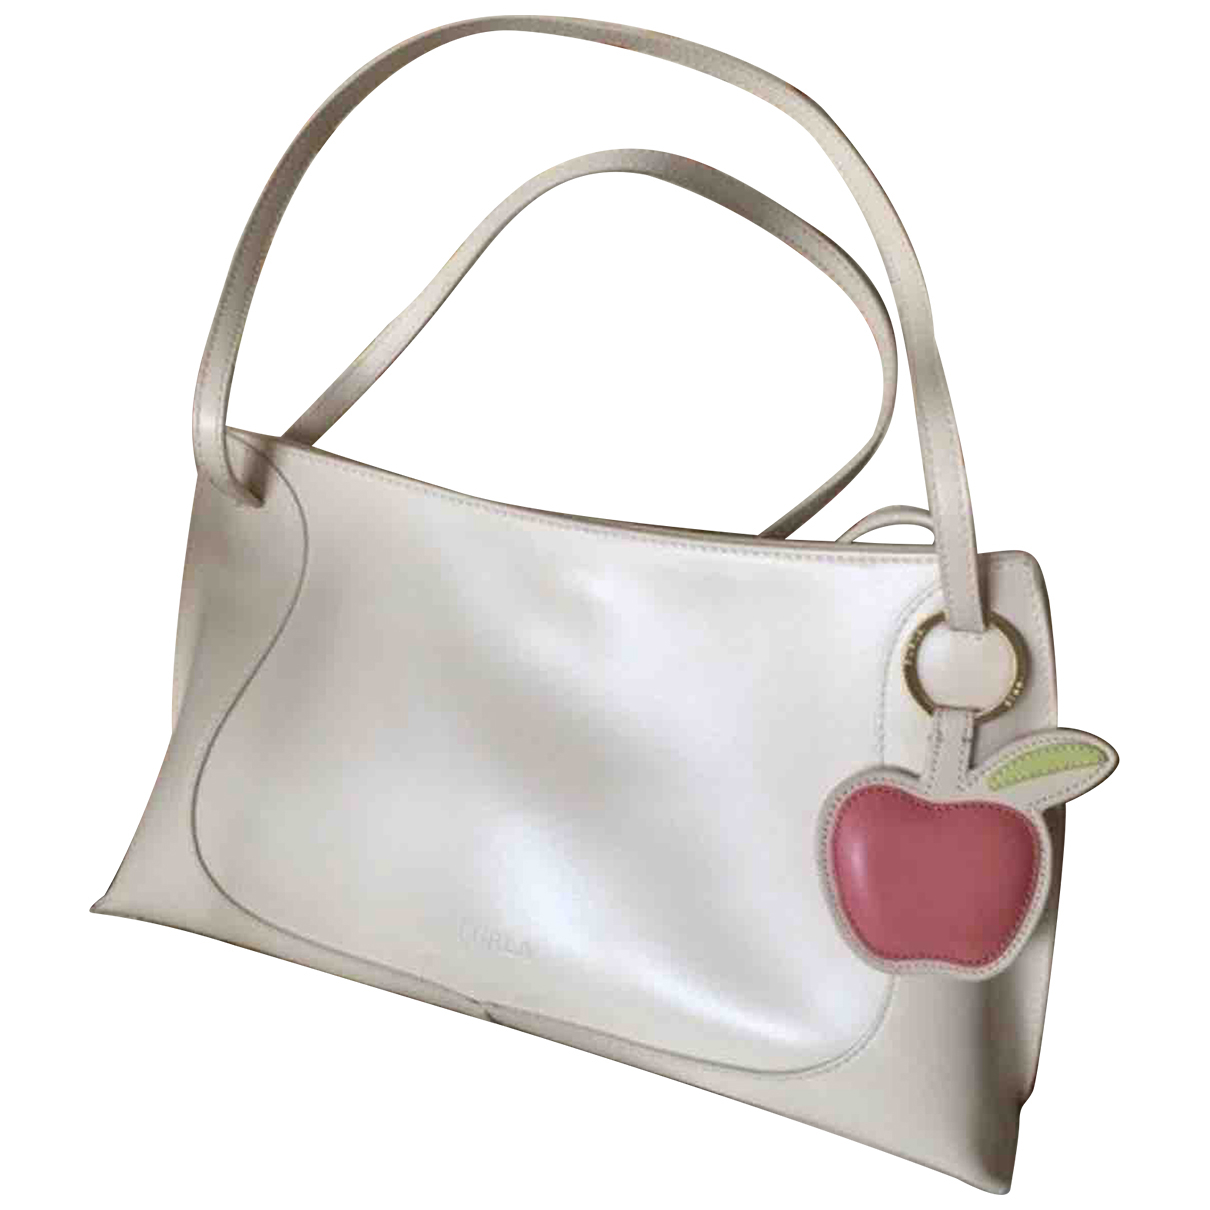 Furla \N Ecru Leather handbag for Women \N